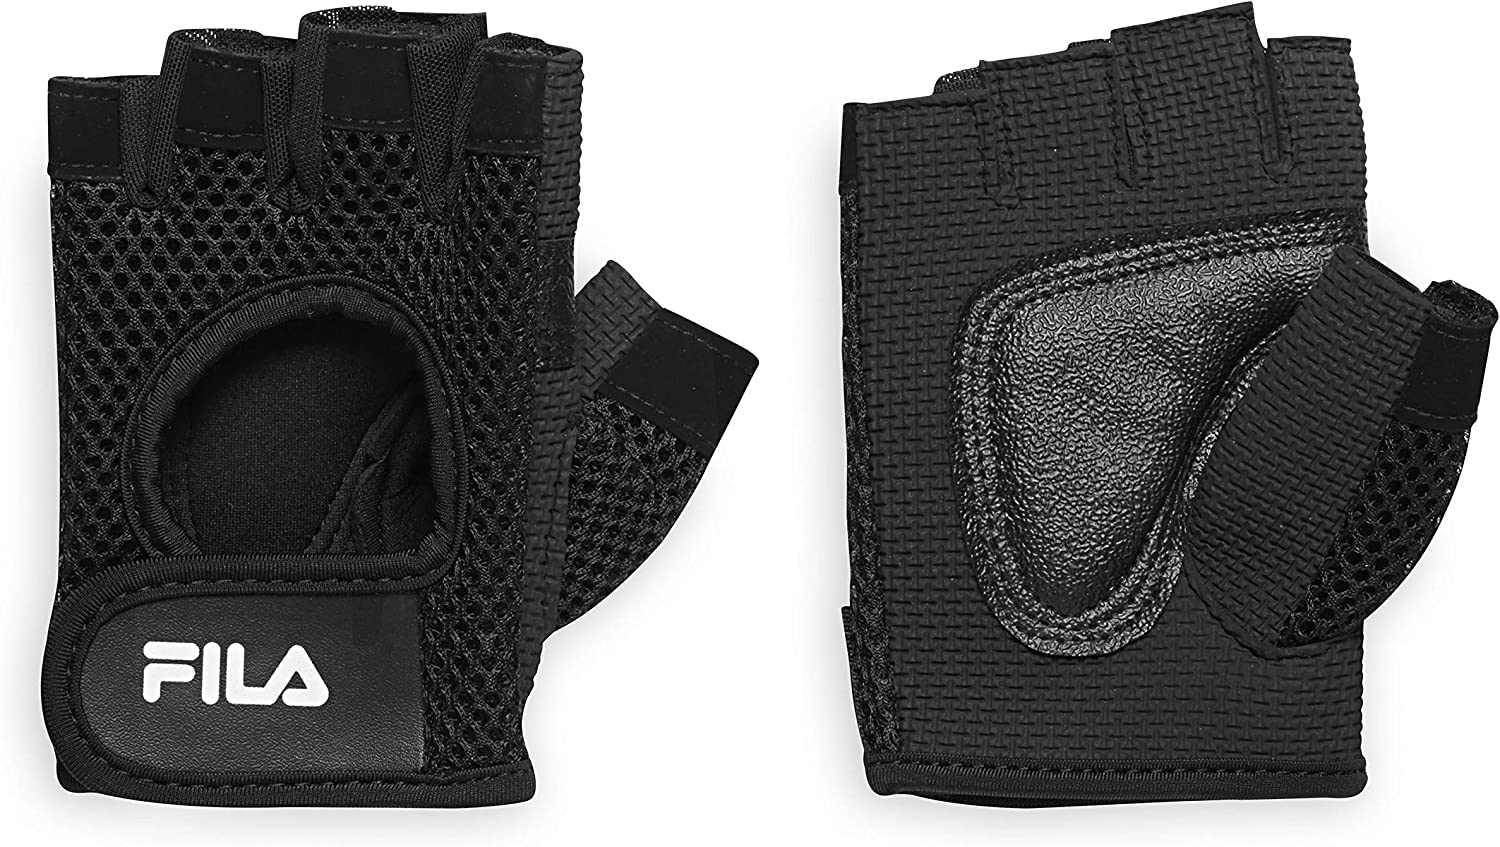 FILA Accessories Exercise Gloves - Classic Fitness Workout Gloves for Men & Women | Padded Palm Breathable Mesh | Ideal for Weightlifting, Floor Gym Routines and More (Small/Medium), Black